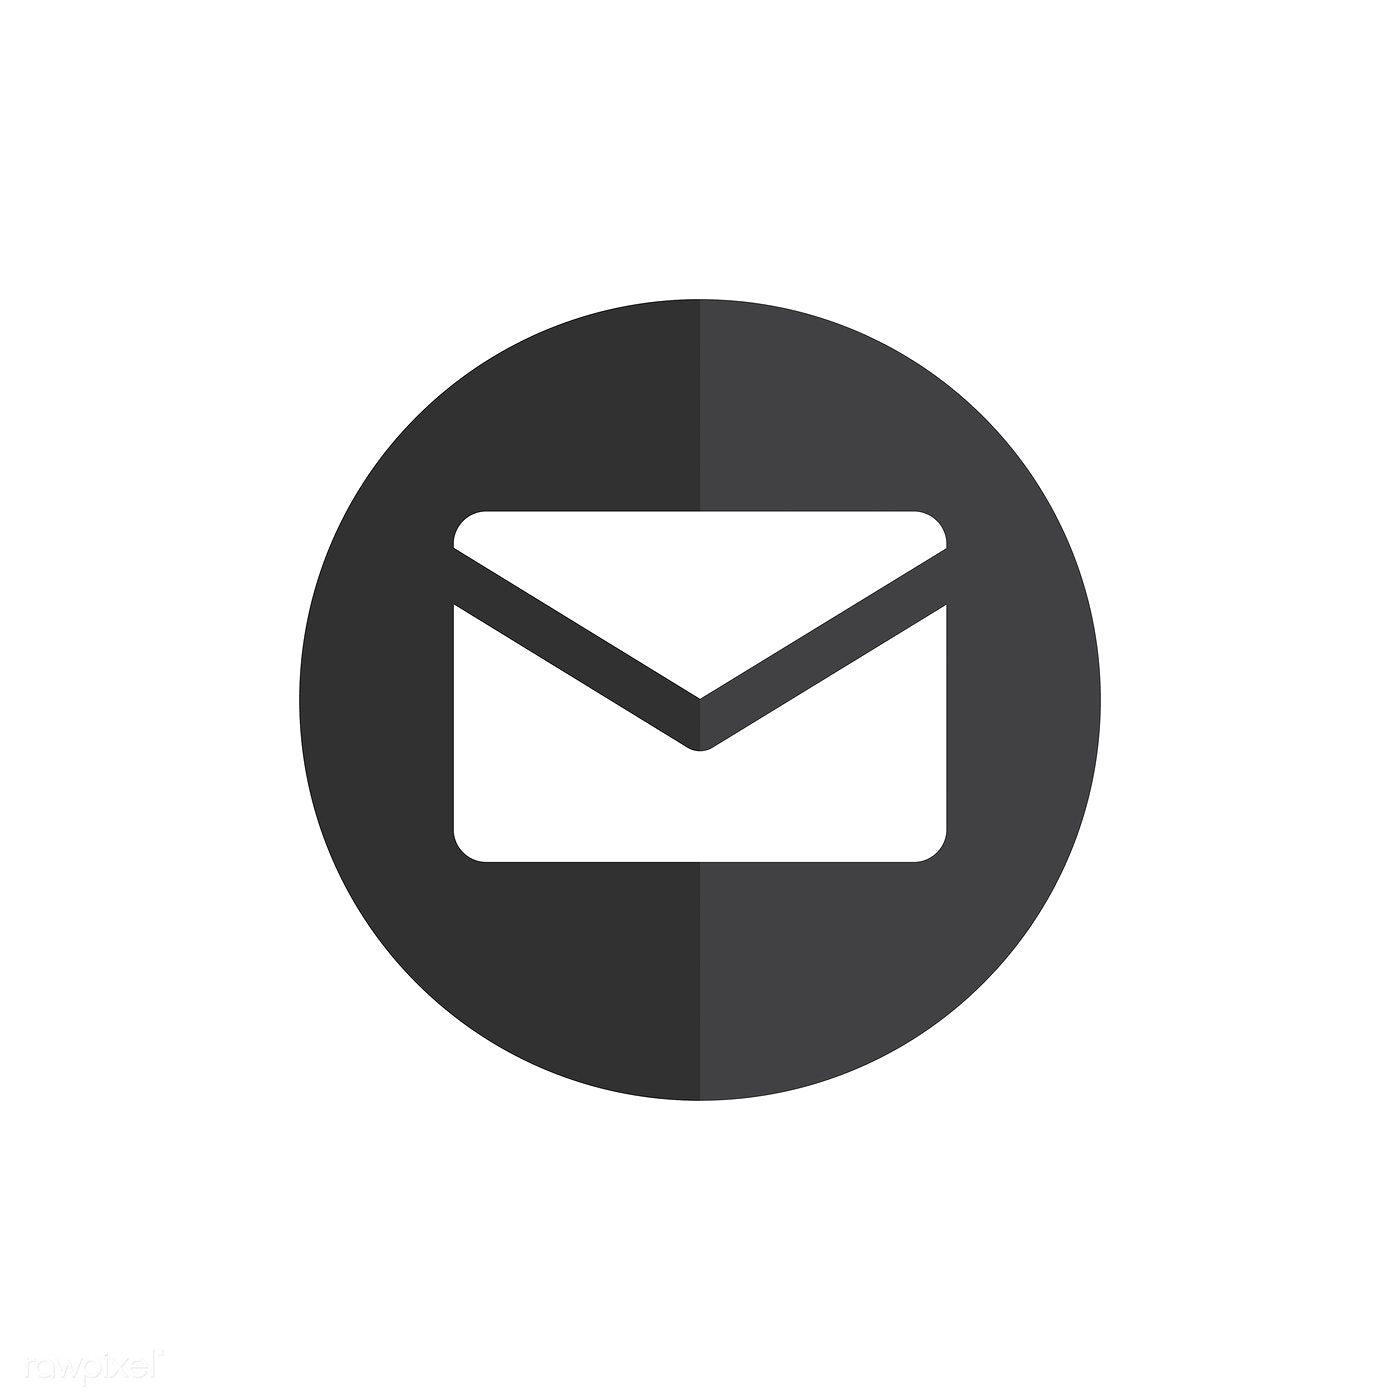 Mail icon vector | free image by rawpixel.com